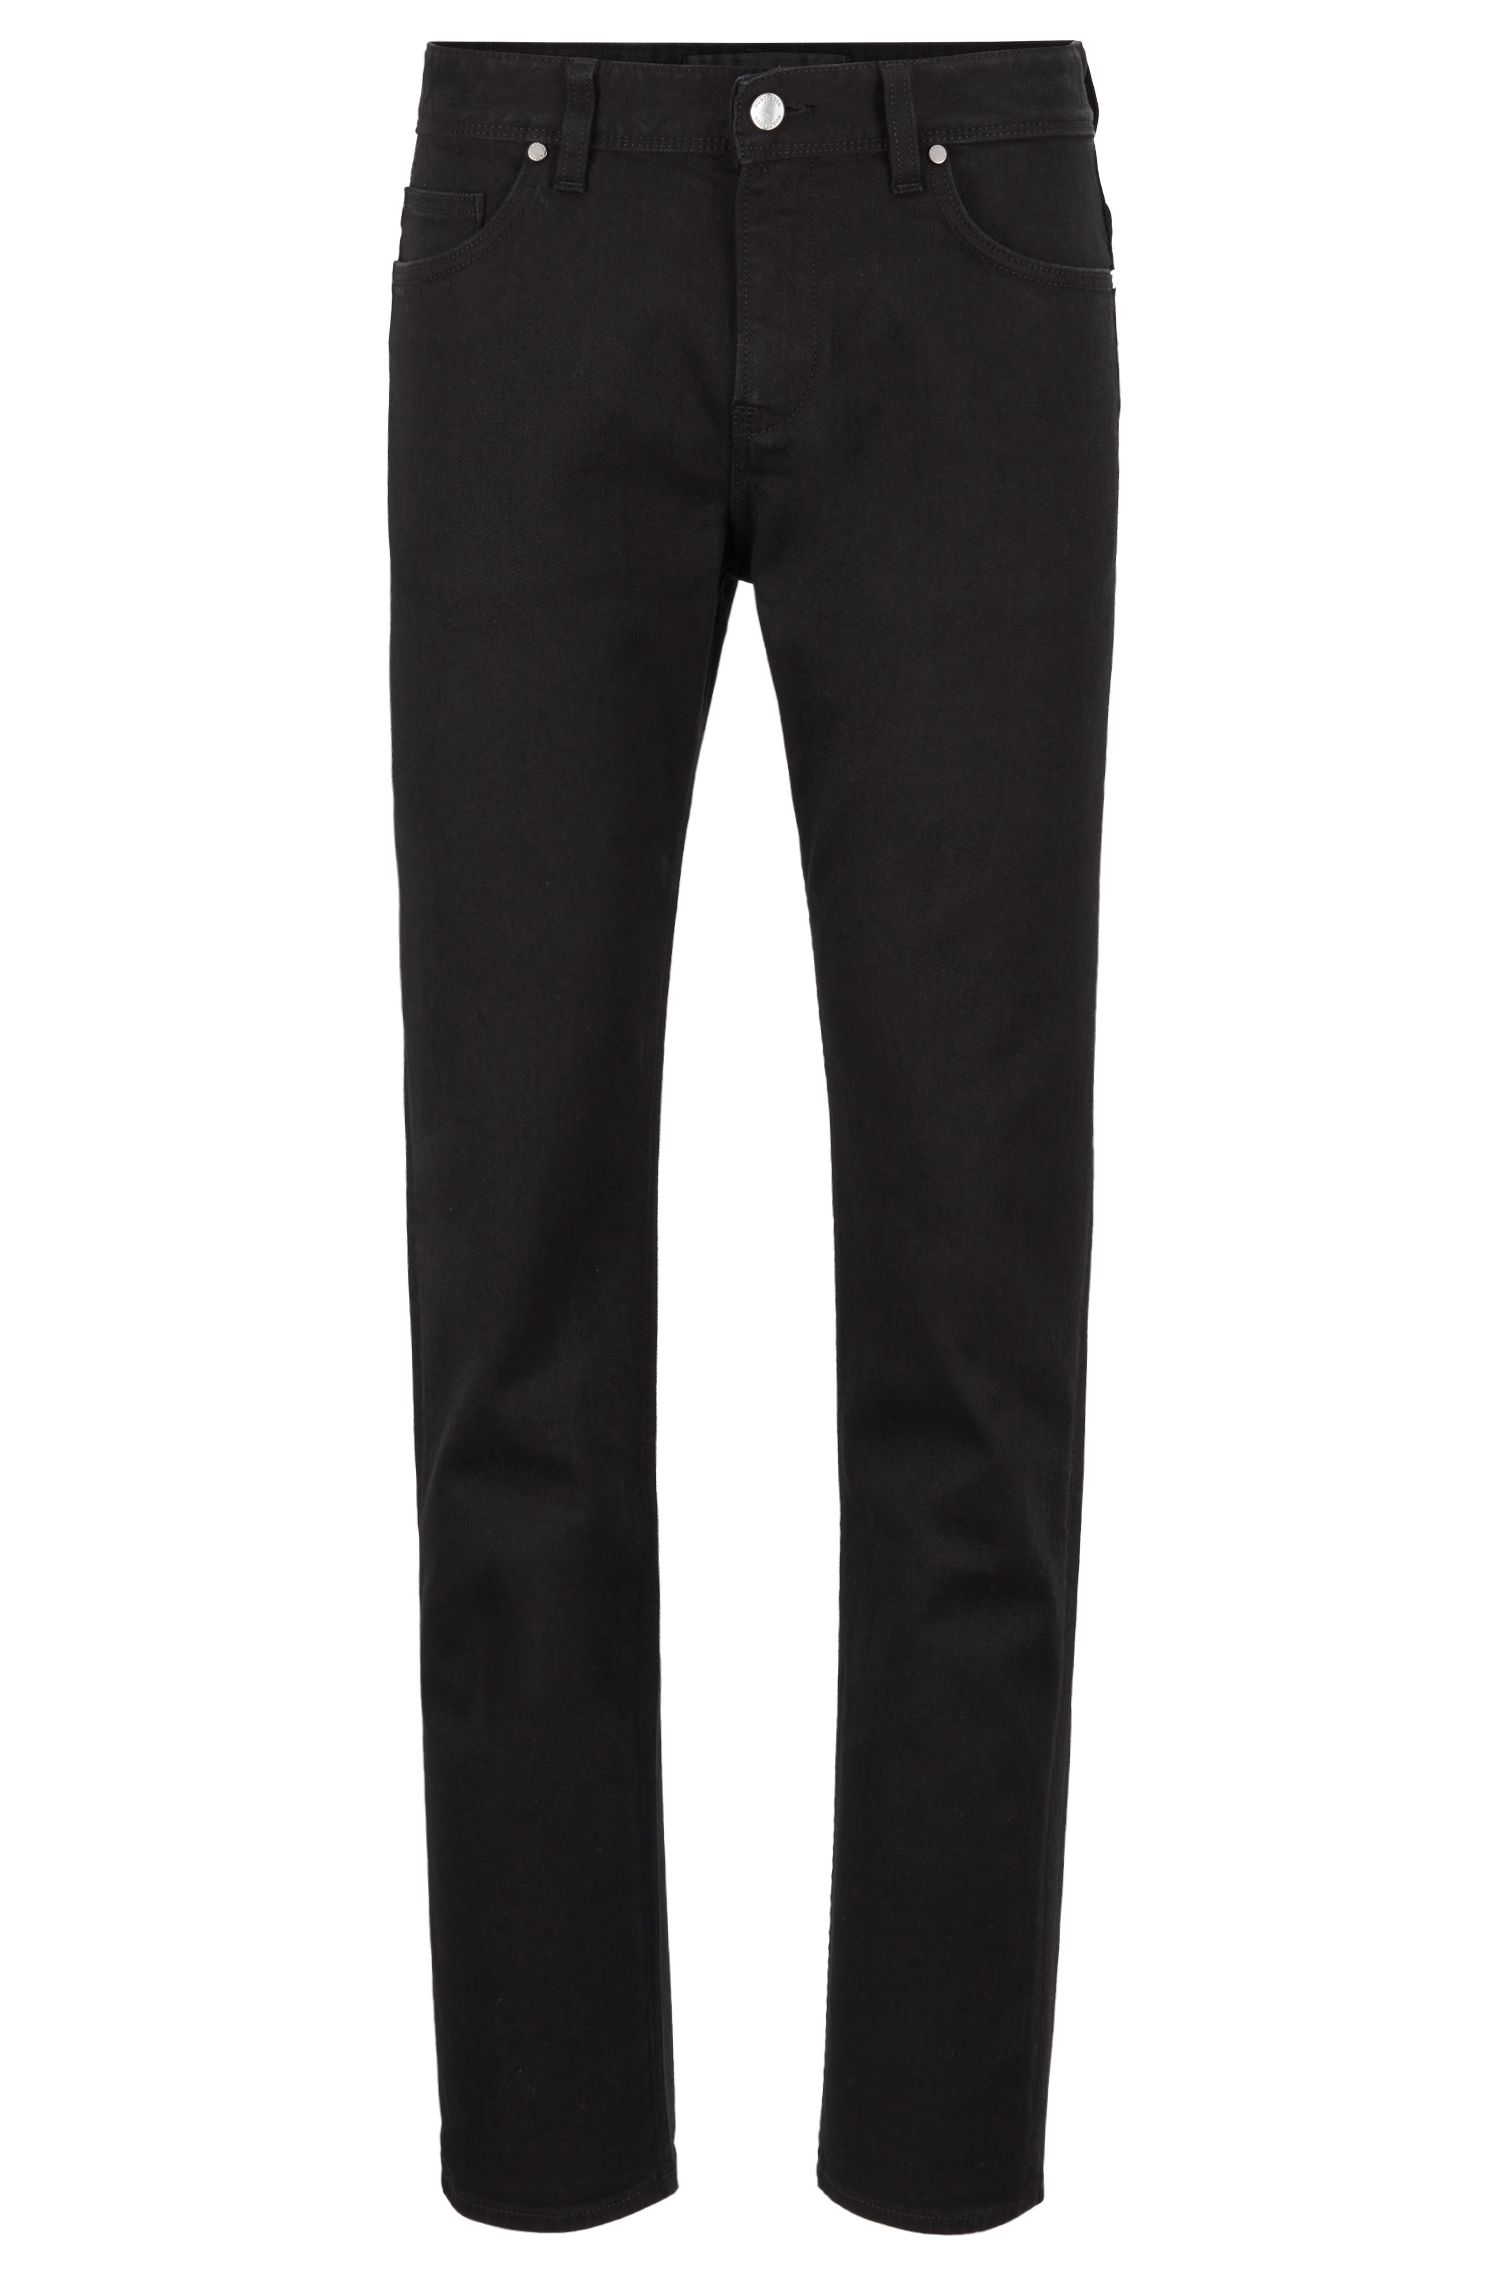 Jean Slim Fit en denim stretch de coton BCI, Noir